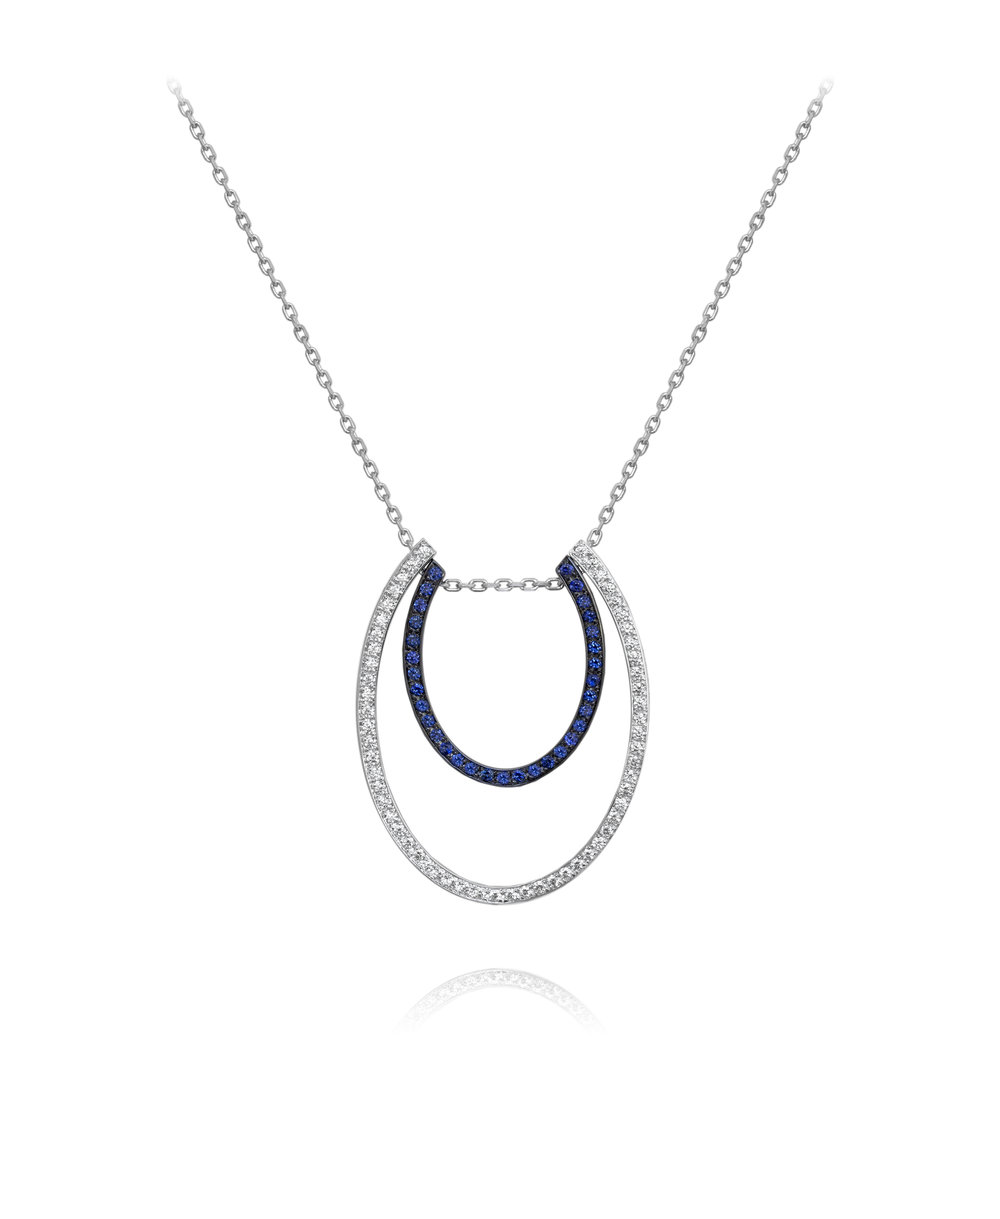 Necklace  18KT White Gold, Diamonds, Sapphires  REF. MOU145